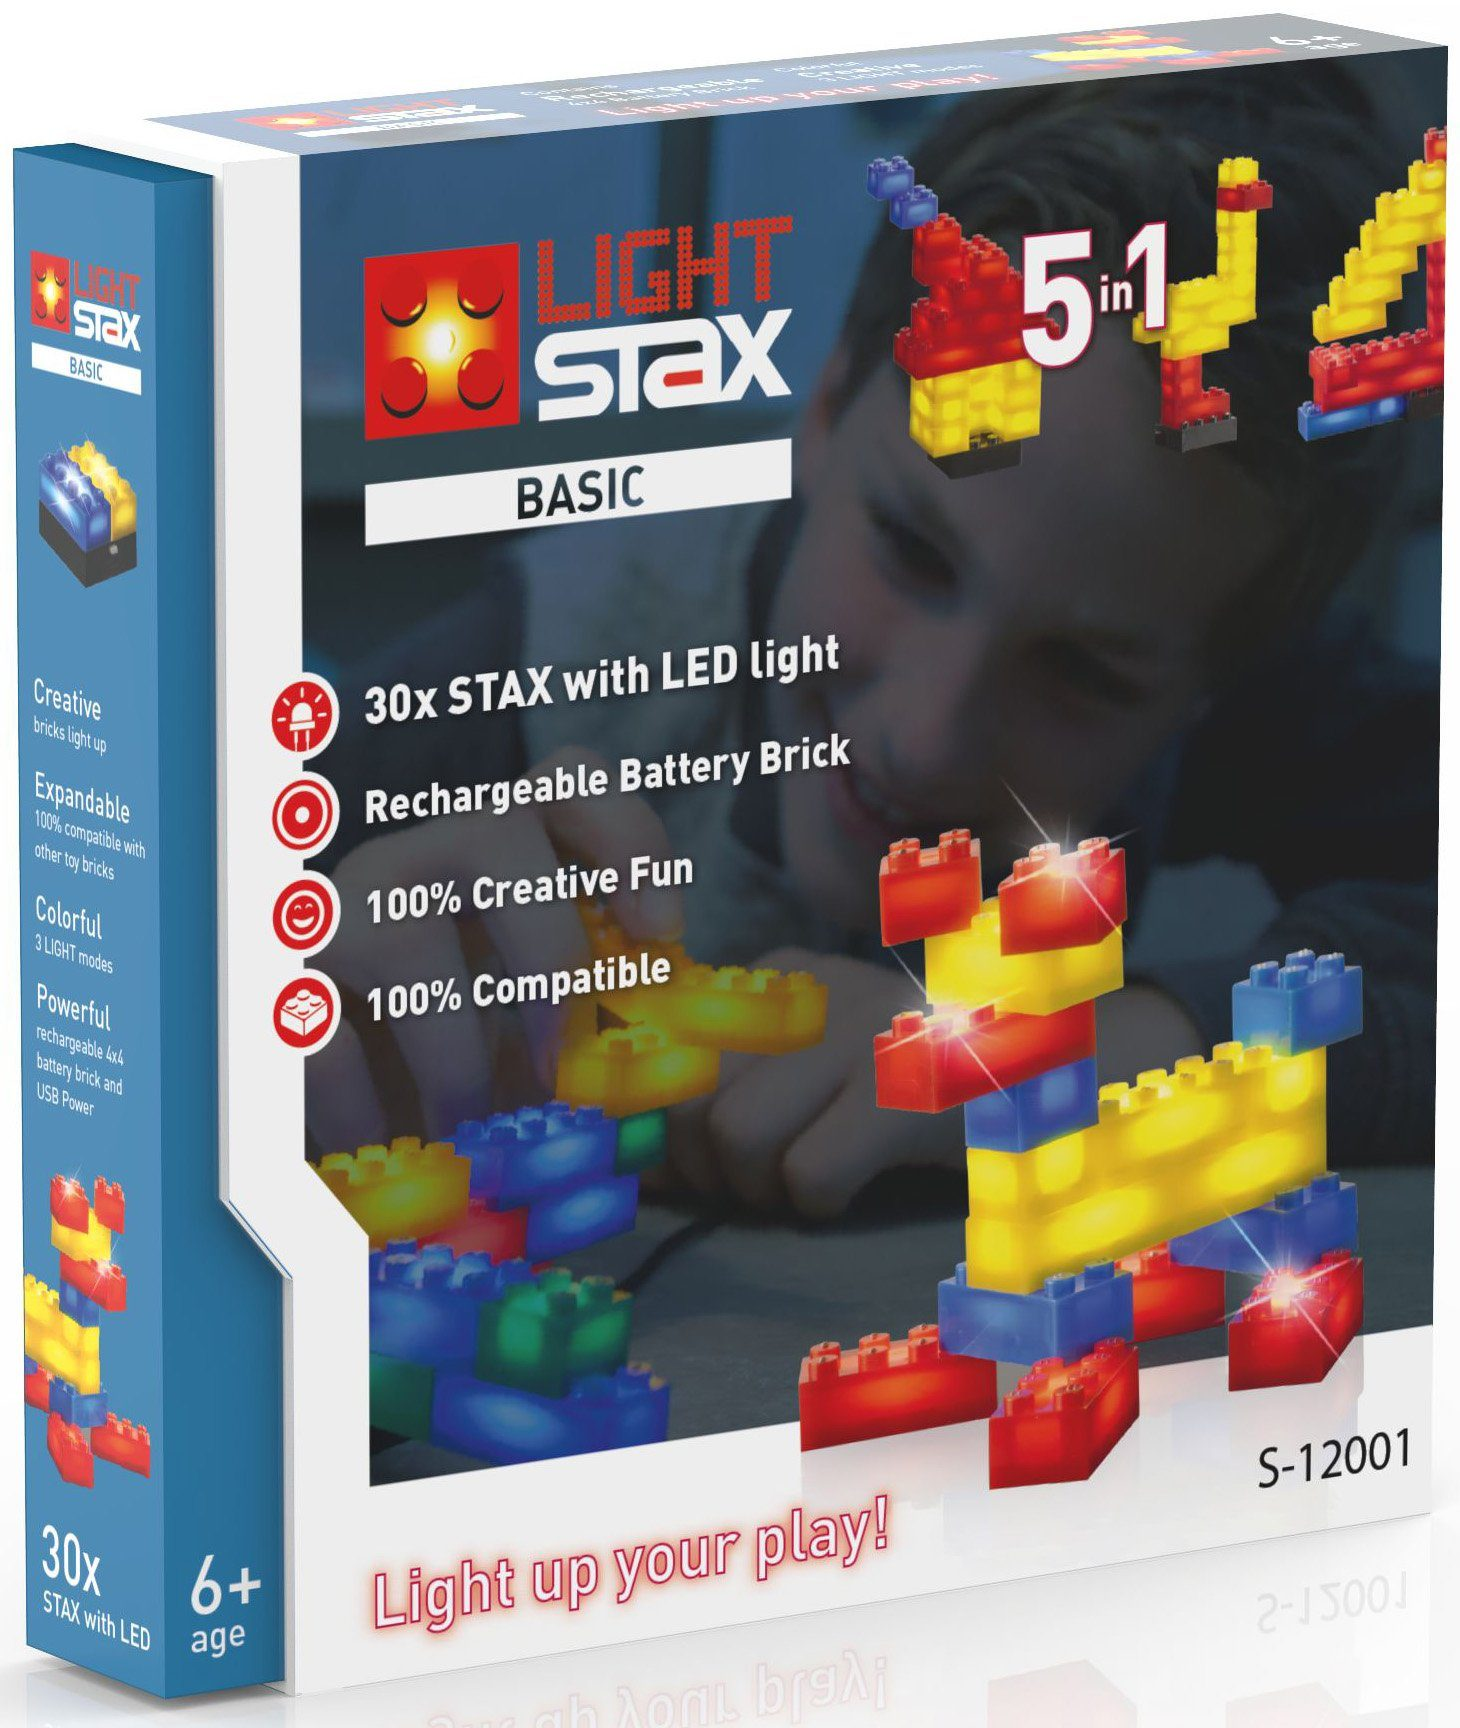 LIGHT STAX® Leuchtbausteine inkl. Mobiler Power Stax, »Basic 5in1 - S-12001«